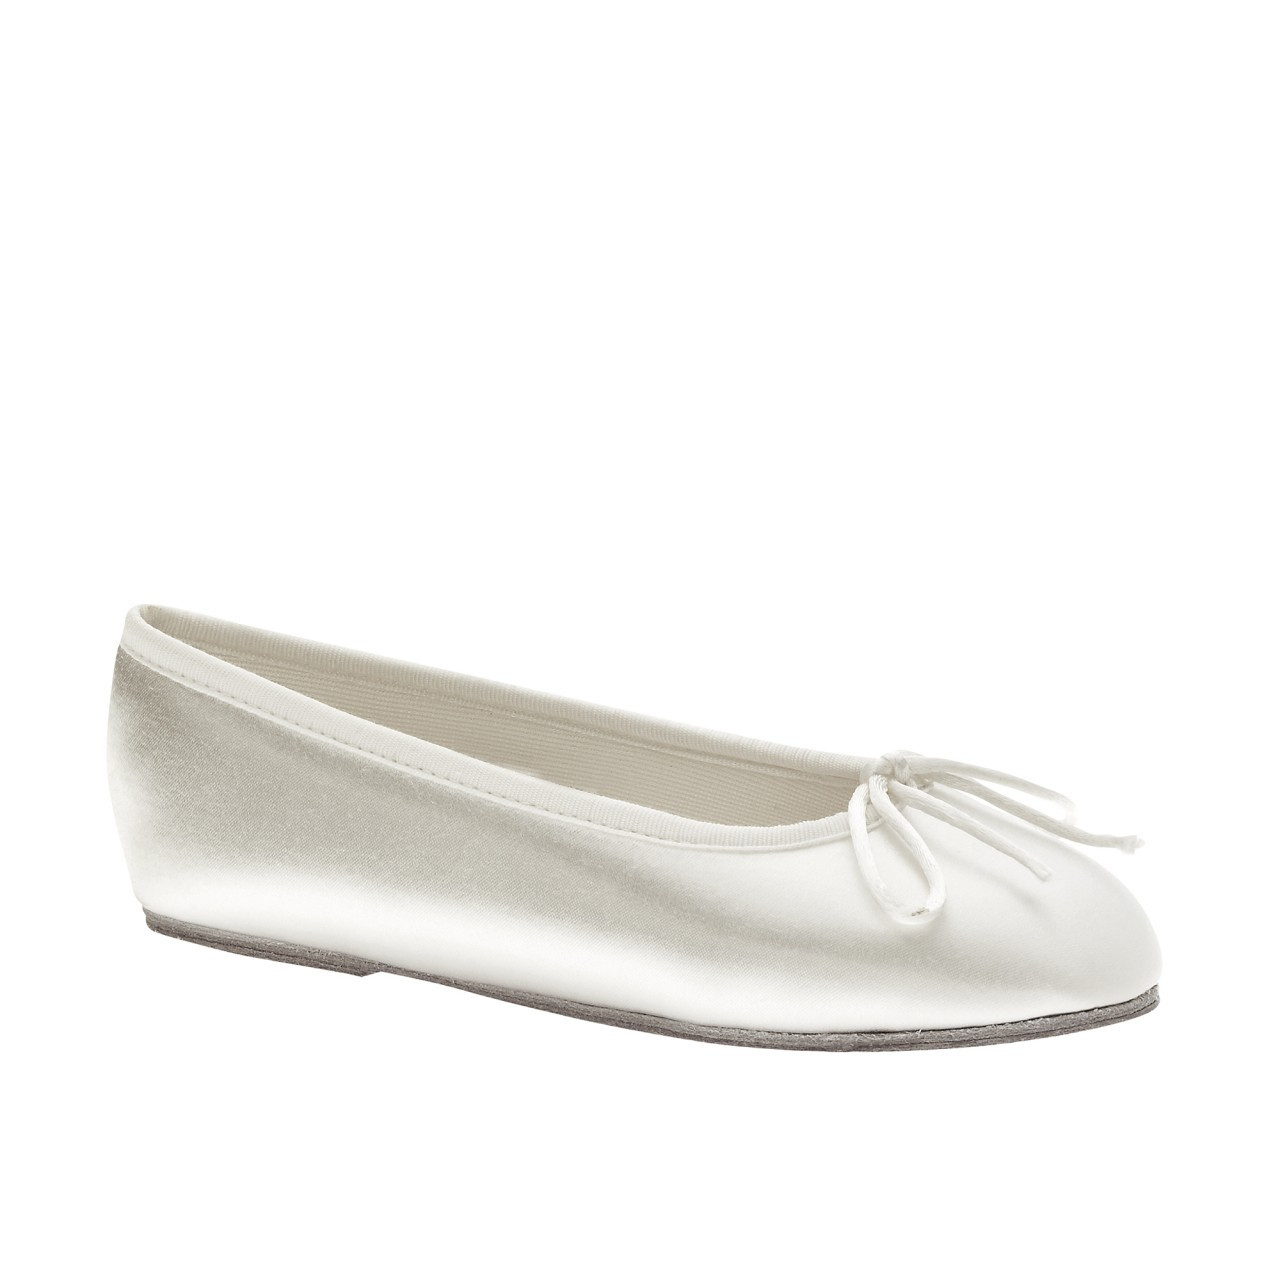 8de8cc1bbaa28 Shoes For First Communion   Special Occasion Shoes For Little Girls